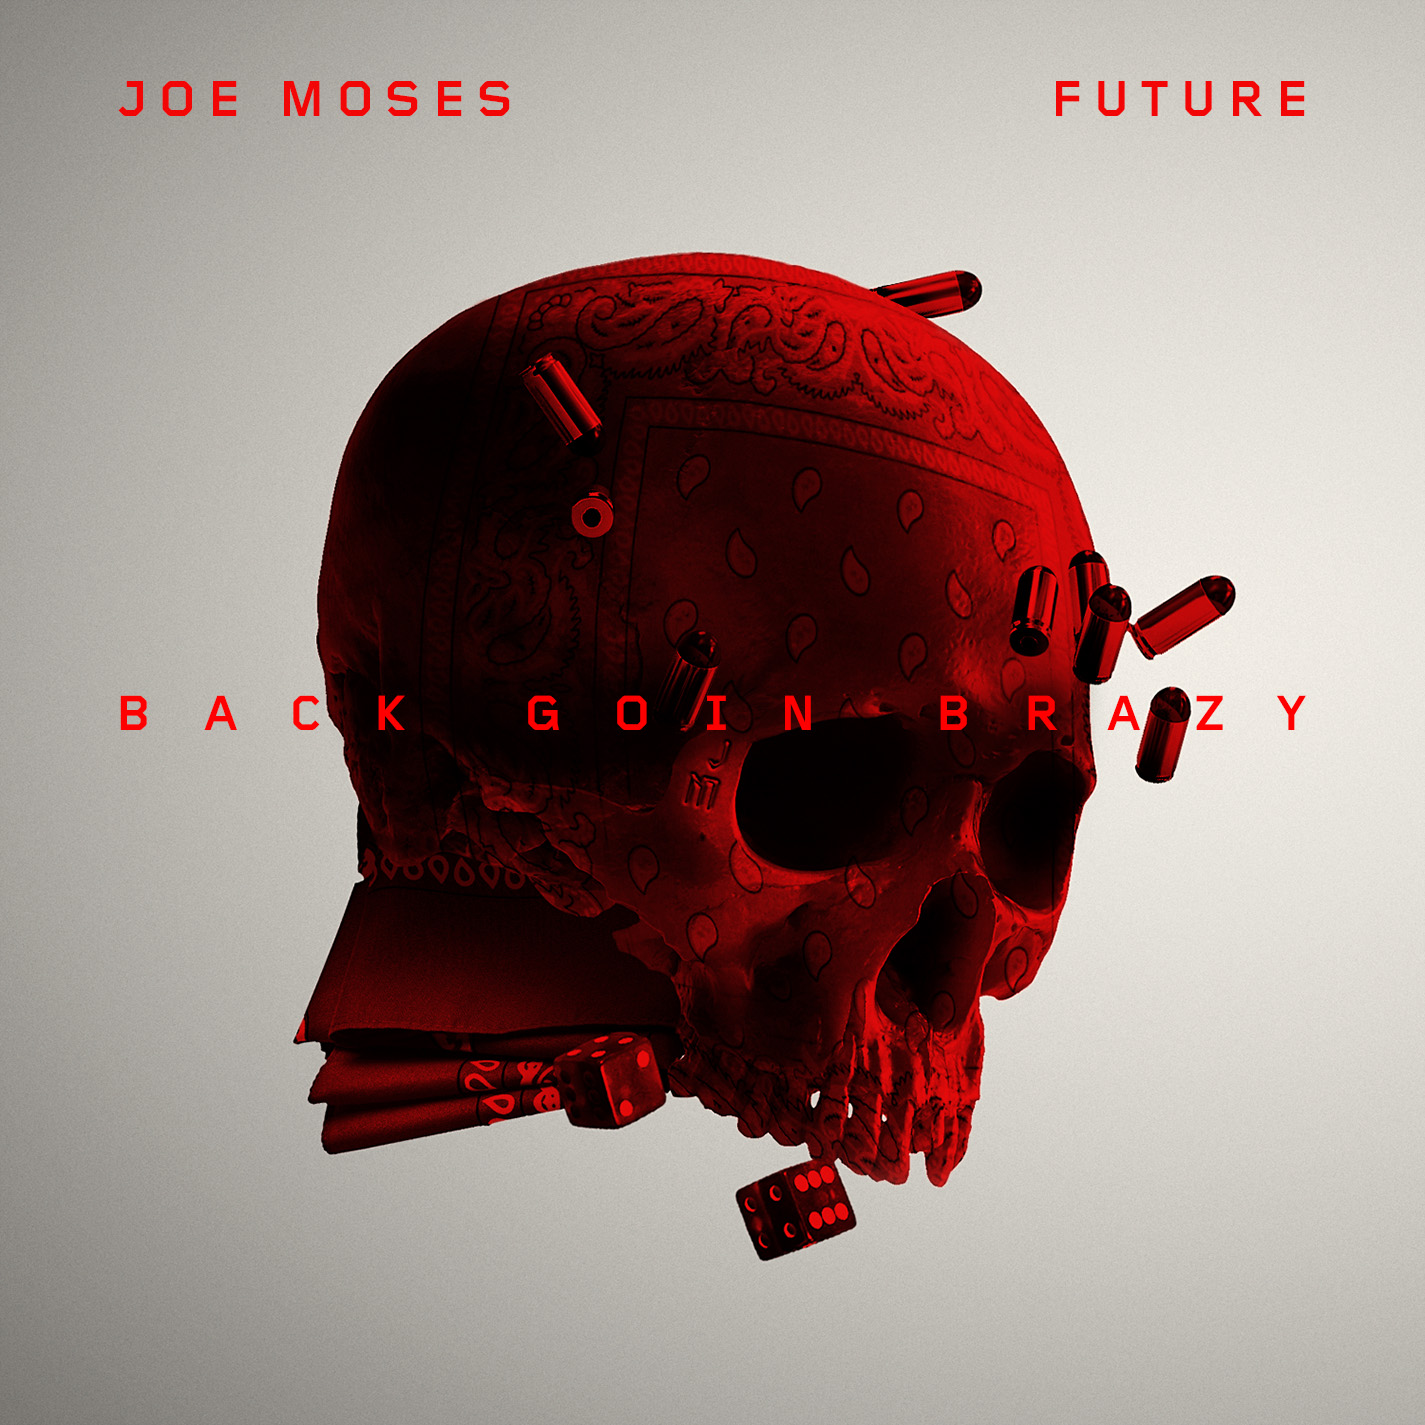 Joe Moses - Back Goin Brazy single art